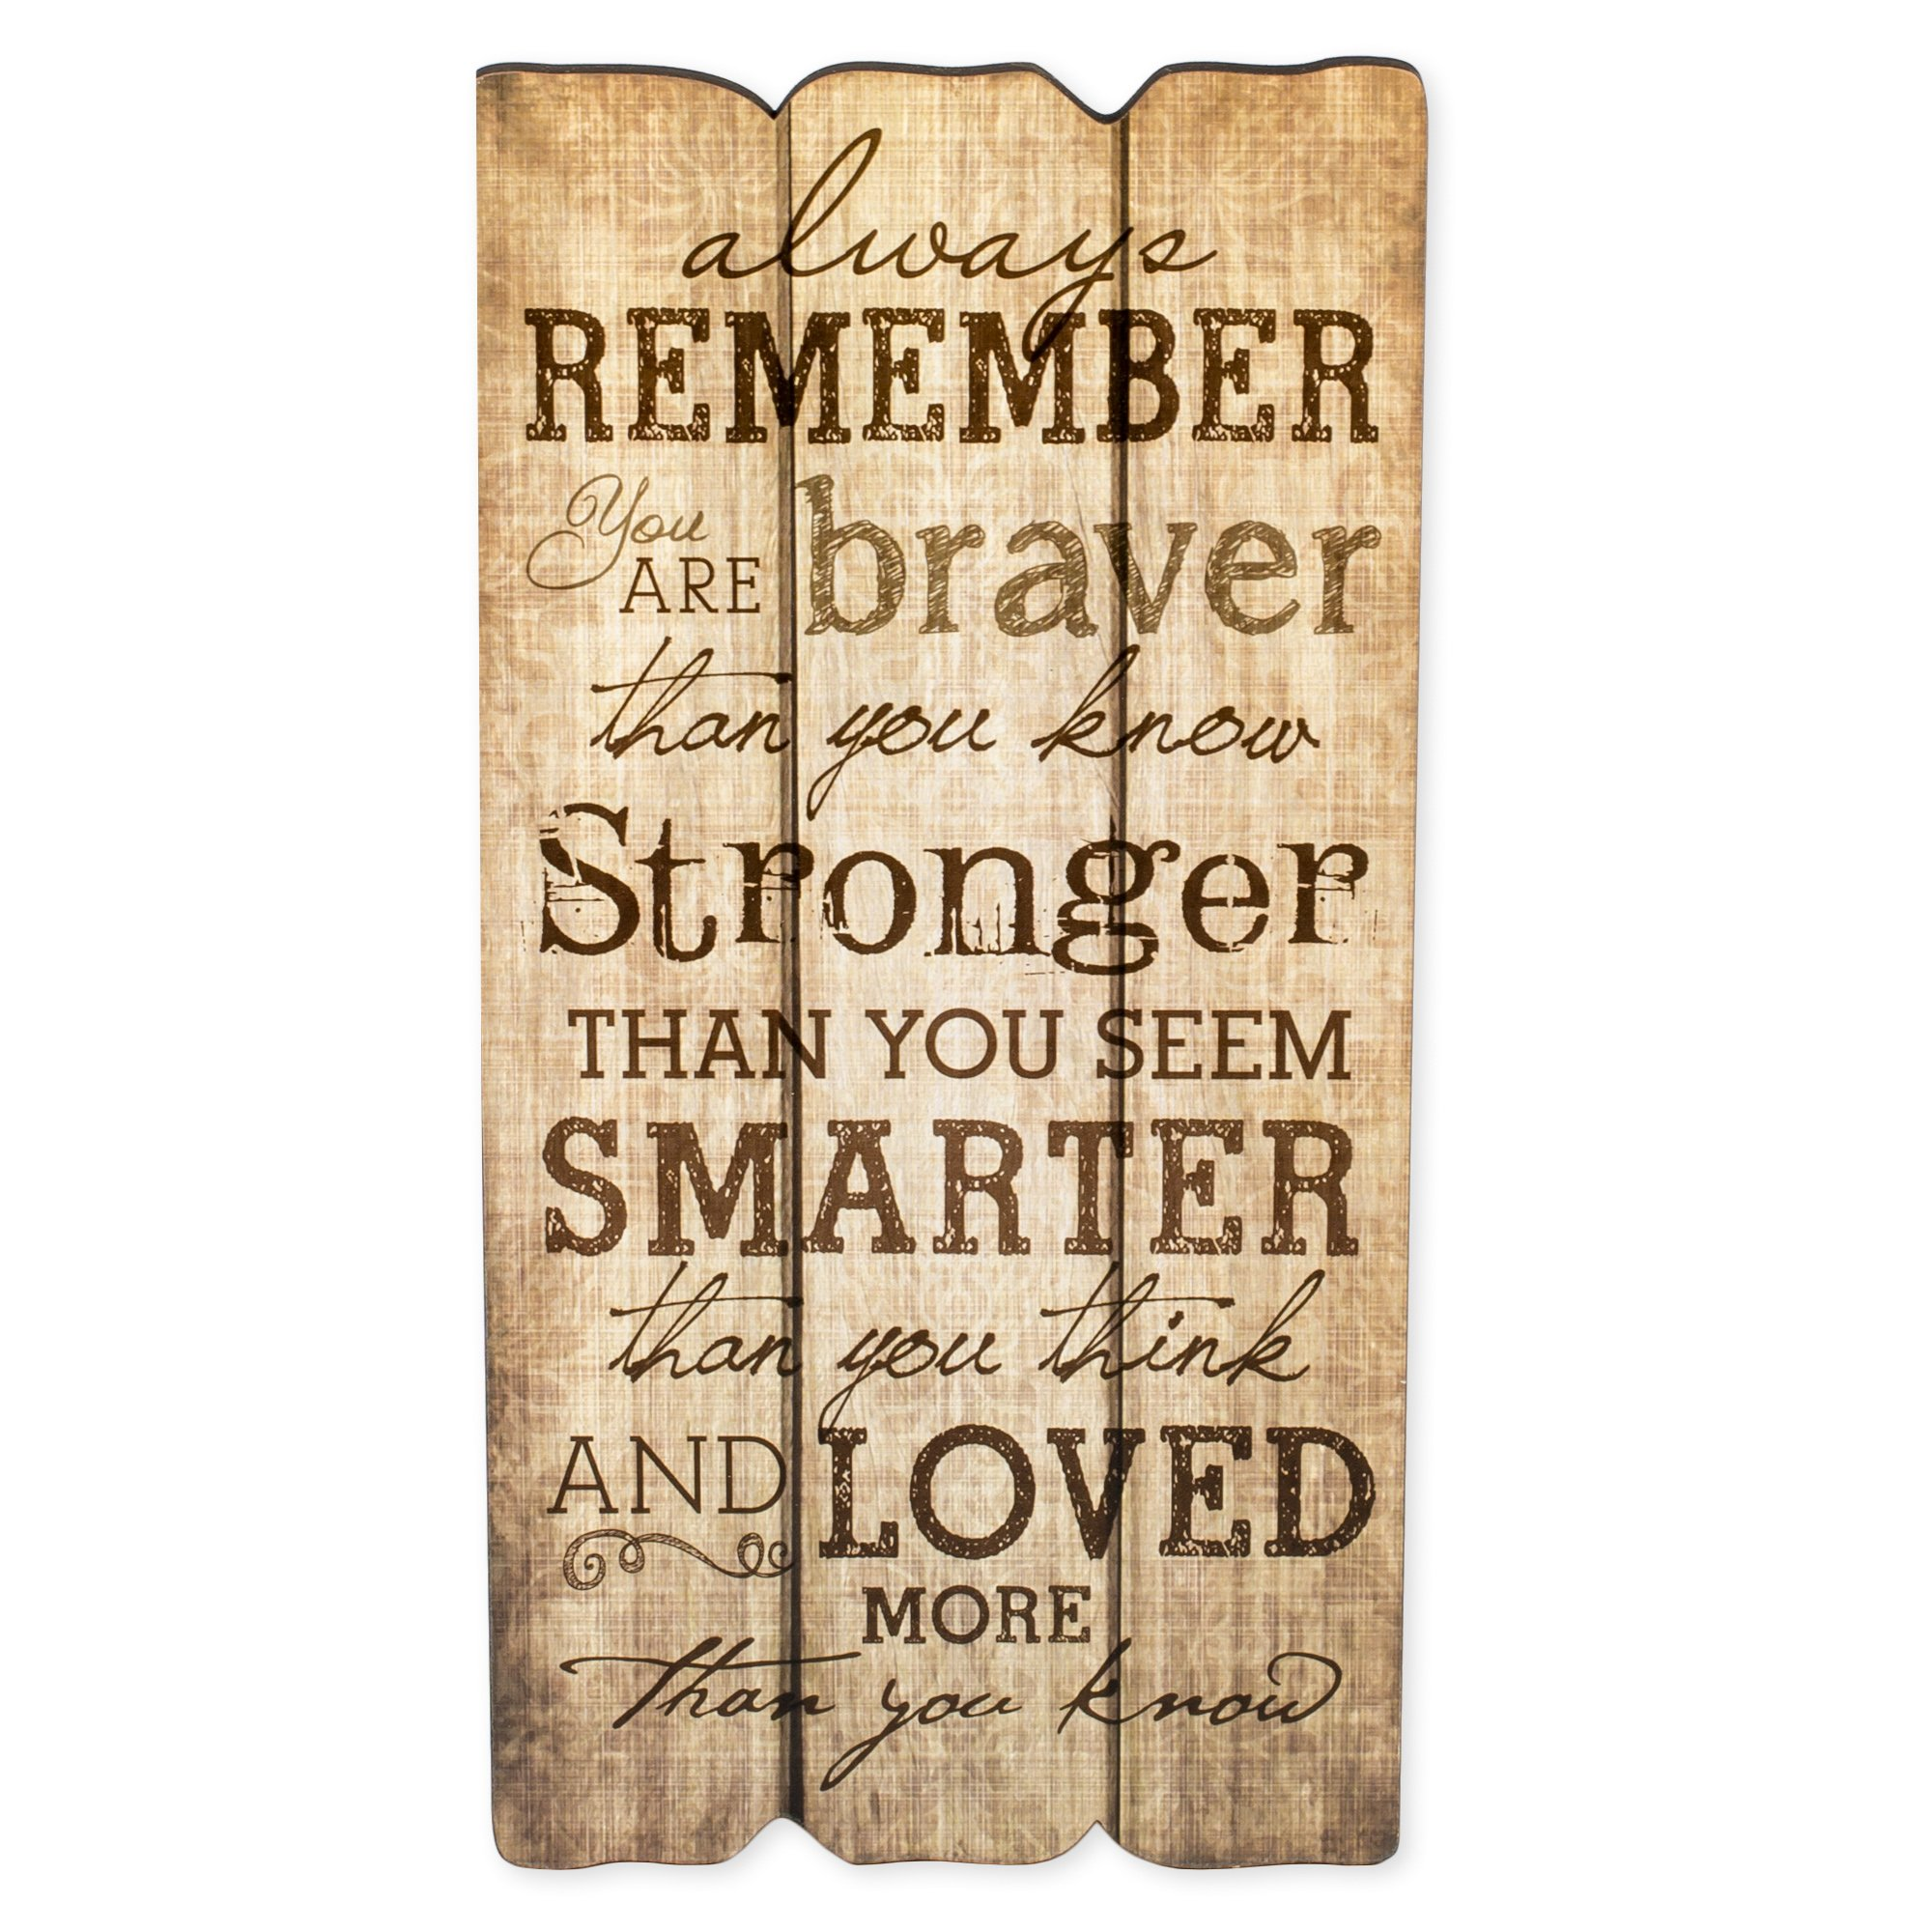 P. Graham Dunn Always Remember You Are Stronger Braver Smarter 12 x 6 Decorative Wall Art Sign Plaque by P. Graham Dunn (Image #1)